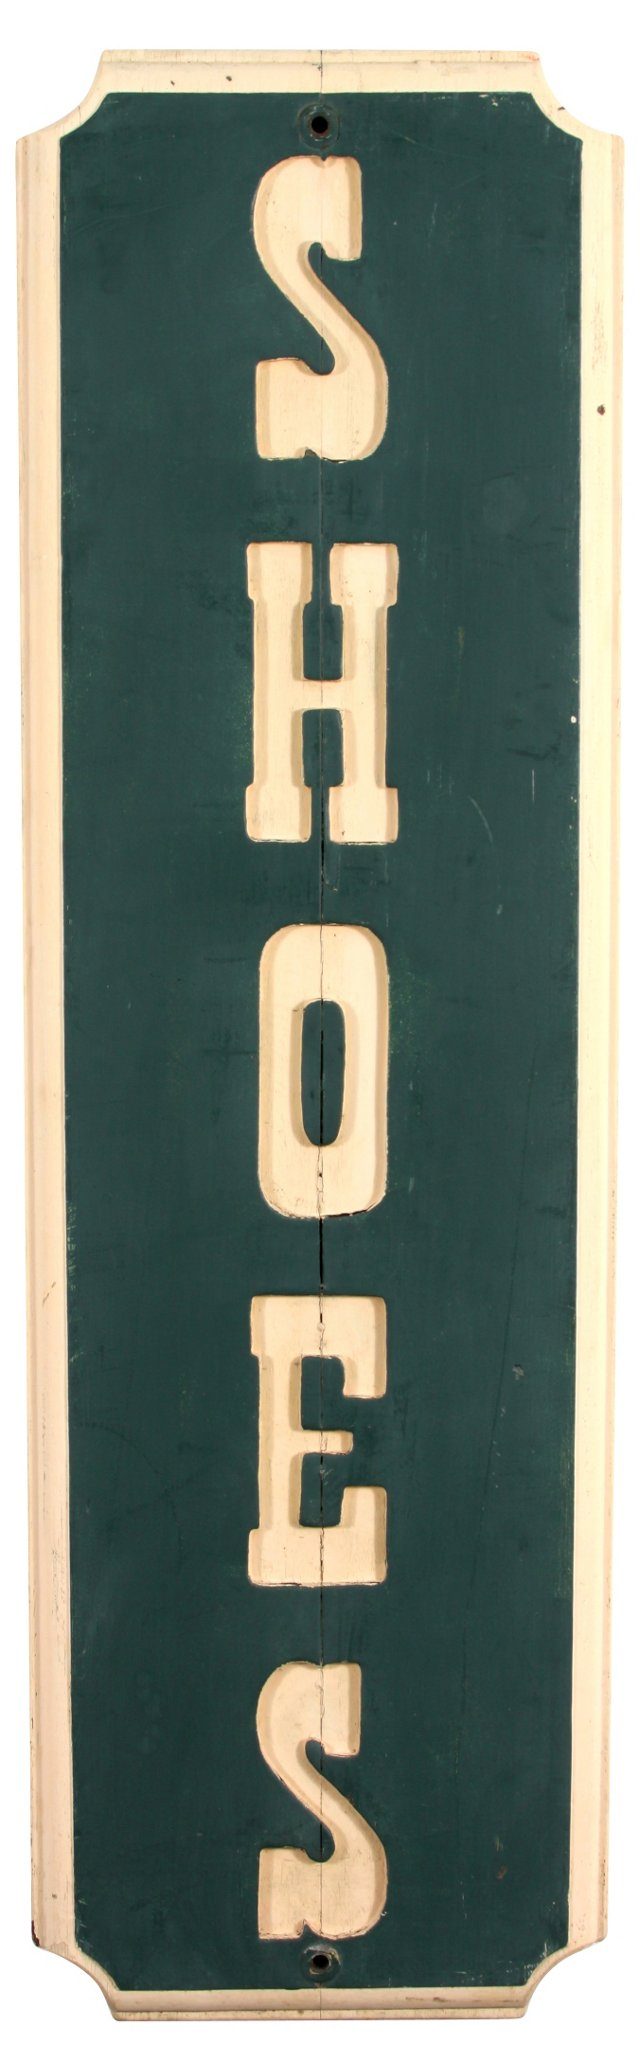 Shoes Sign, 1978